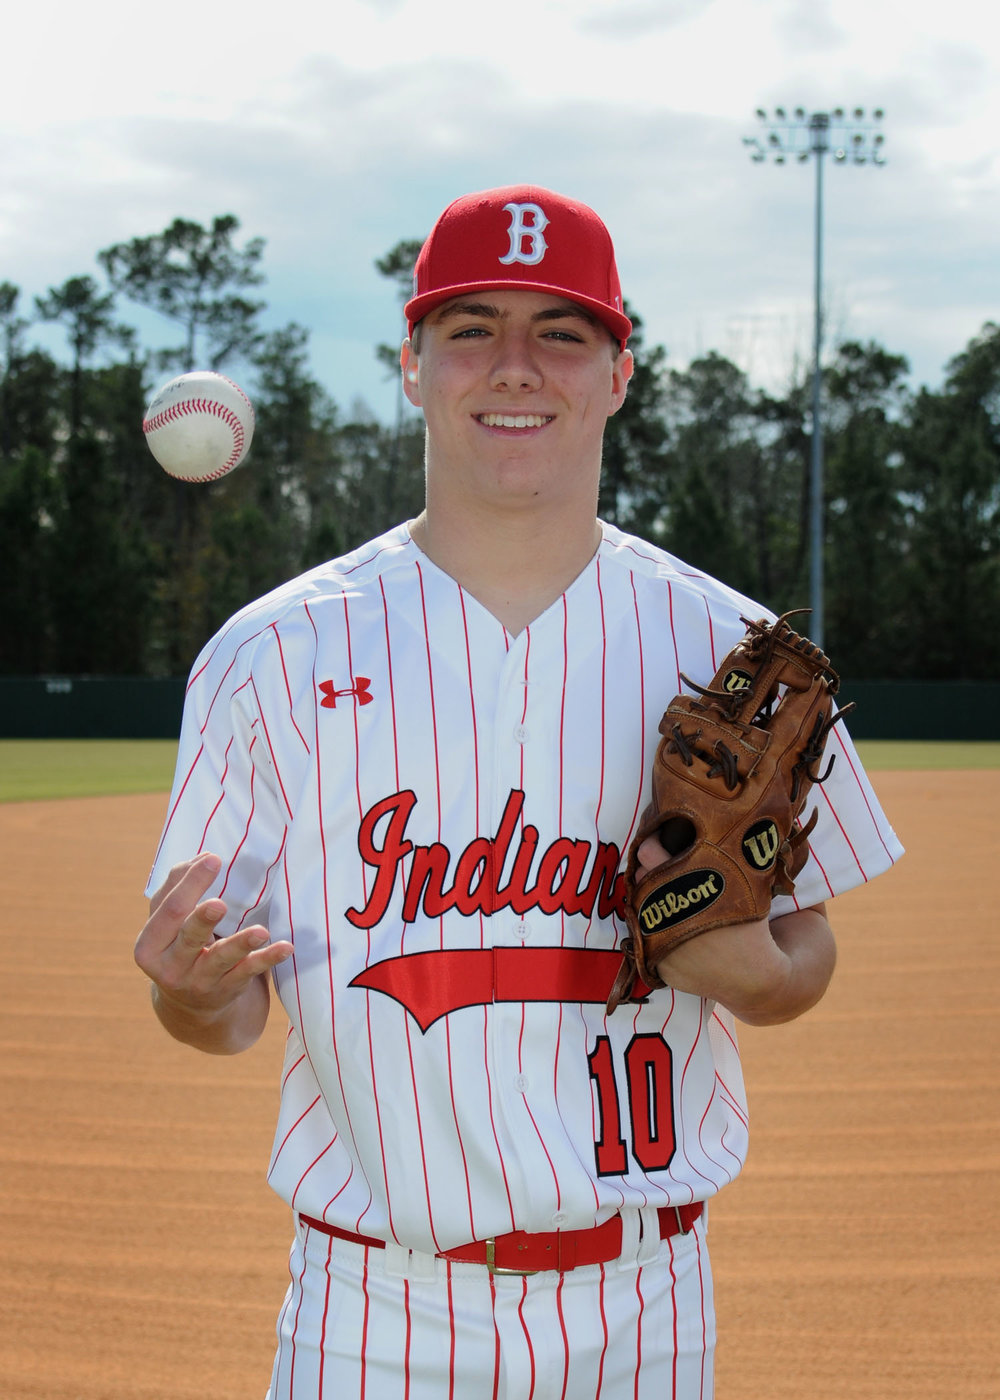 Brodie King  #10 - Name: Brodie King Parents: David and Carva KingBio: Brodie is a four year member of the BHS baseball team. He has one younger brother named Brandon and he also played football for the Indians.What BHS Baseball has taught me: Brodie has learned that Hard Work will always pay off in the end.